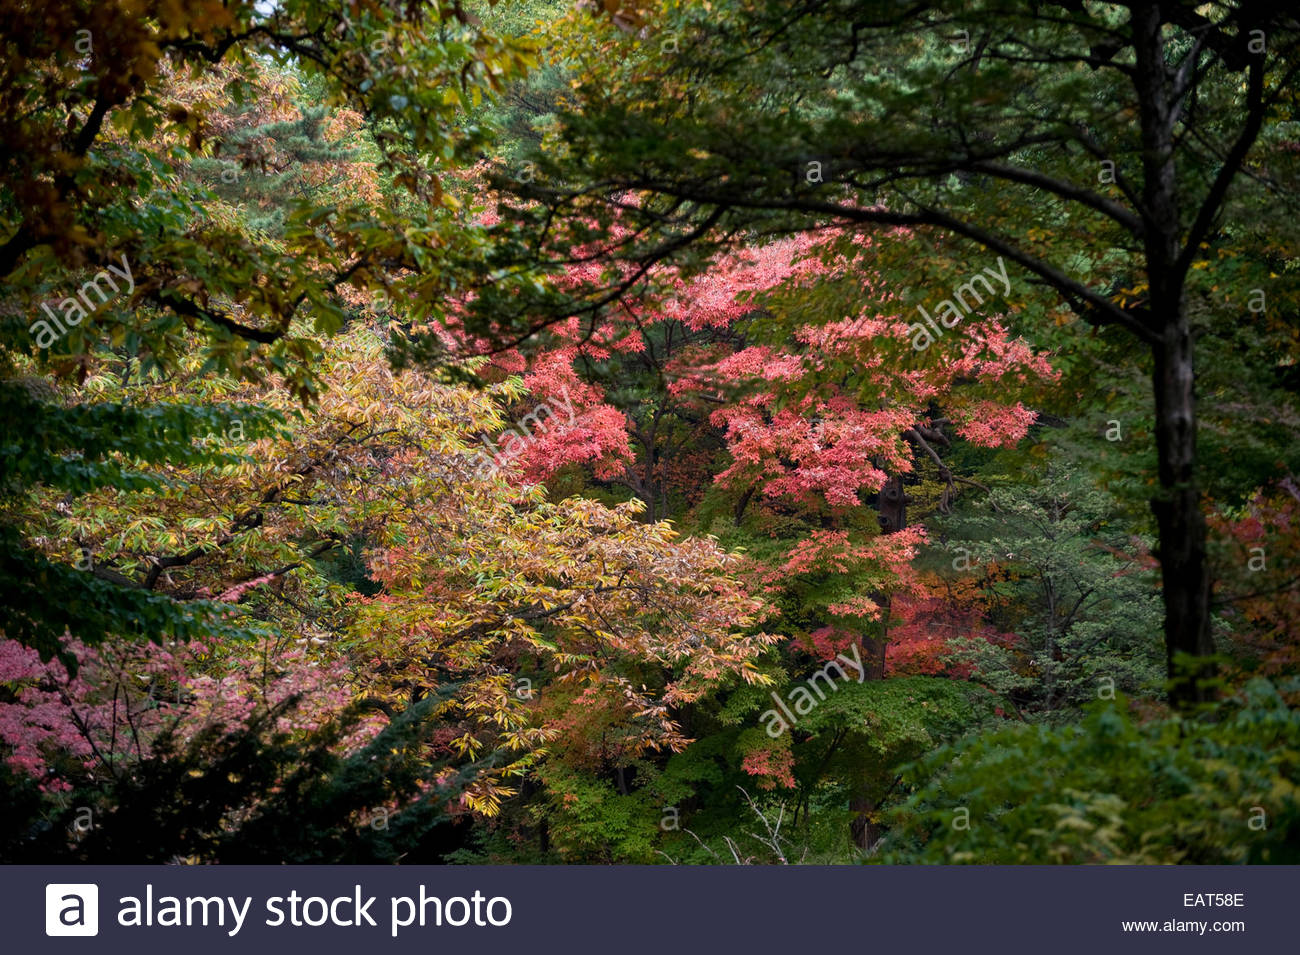 Leaves changing from green to red and pink in the secret garden ...